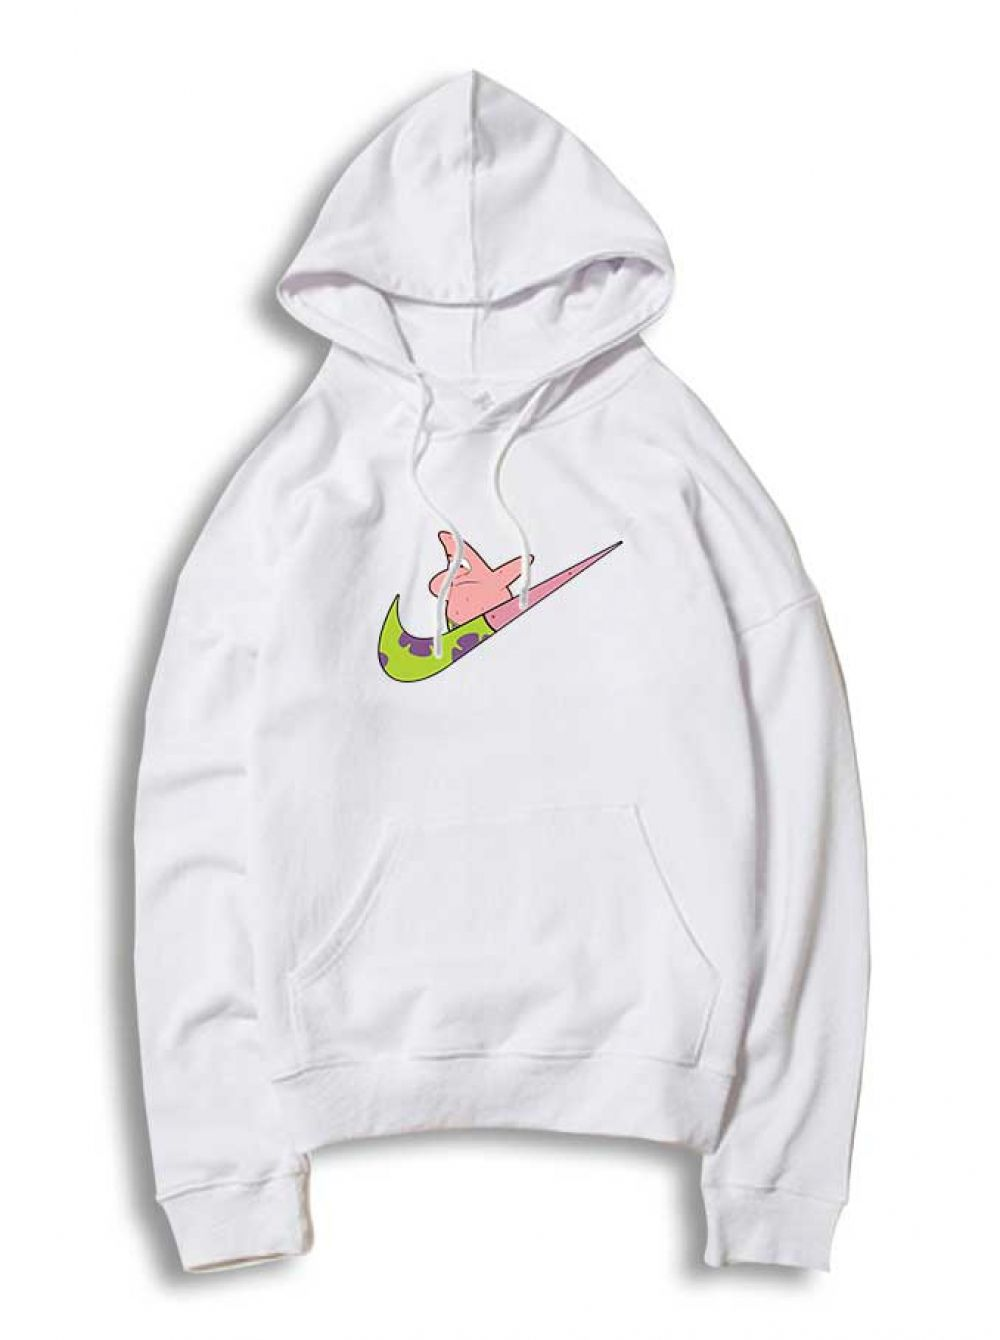 751eec685fbb Get Buy Nike x Patrick Collab Dab Hoodie For Women's Or Men's | Clothing